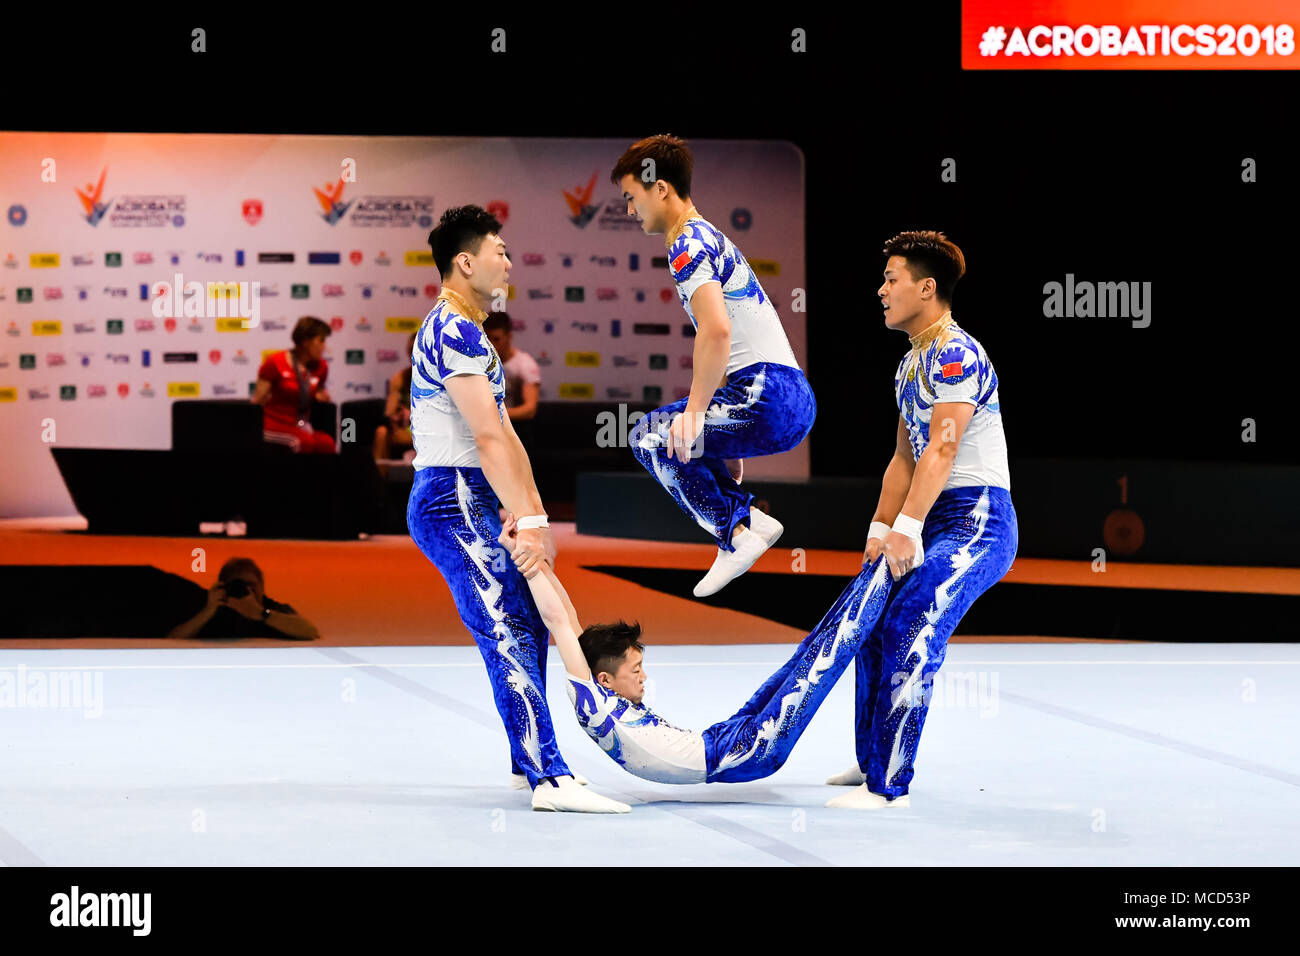 Antwerp, Belgium. 15th April 2018. Fu Zhi, Guo Fei, Jiang Heng and Zhang Junshuo  (CHN) are competing in Men's Group Qualify during the 26th World Championships Acrobatics Gymnastics 2018 at Lotto Arena on Sunday, 15 April 2018. ANTWERP, BELGIUM. Credit: Taka G Wu Credit: Taka Wu/Alamy Live News - Stock Image